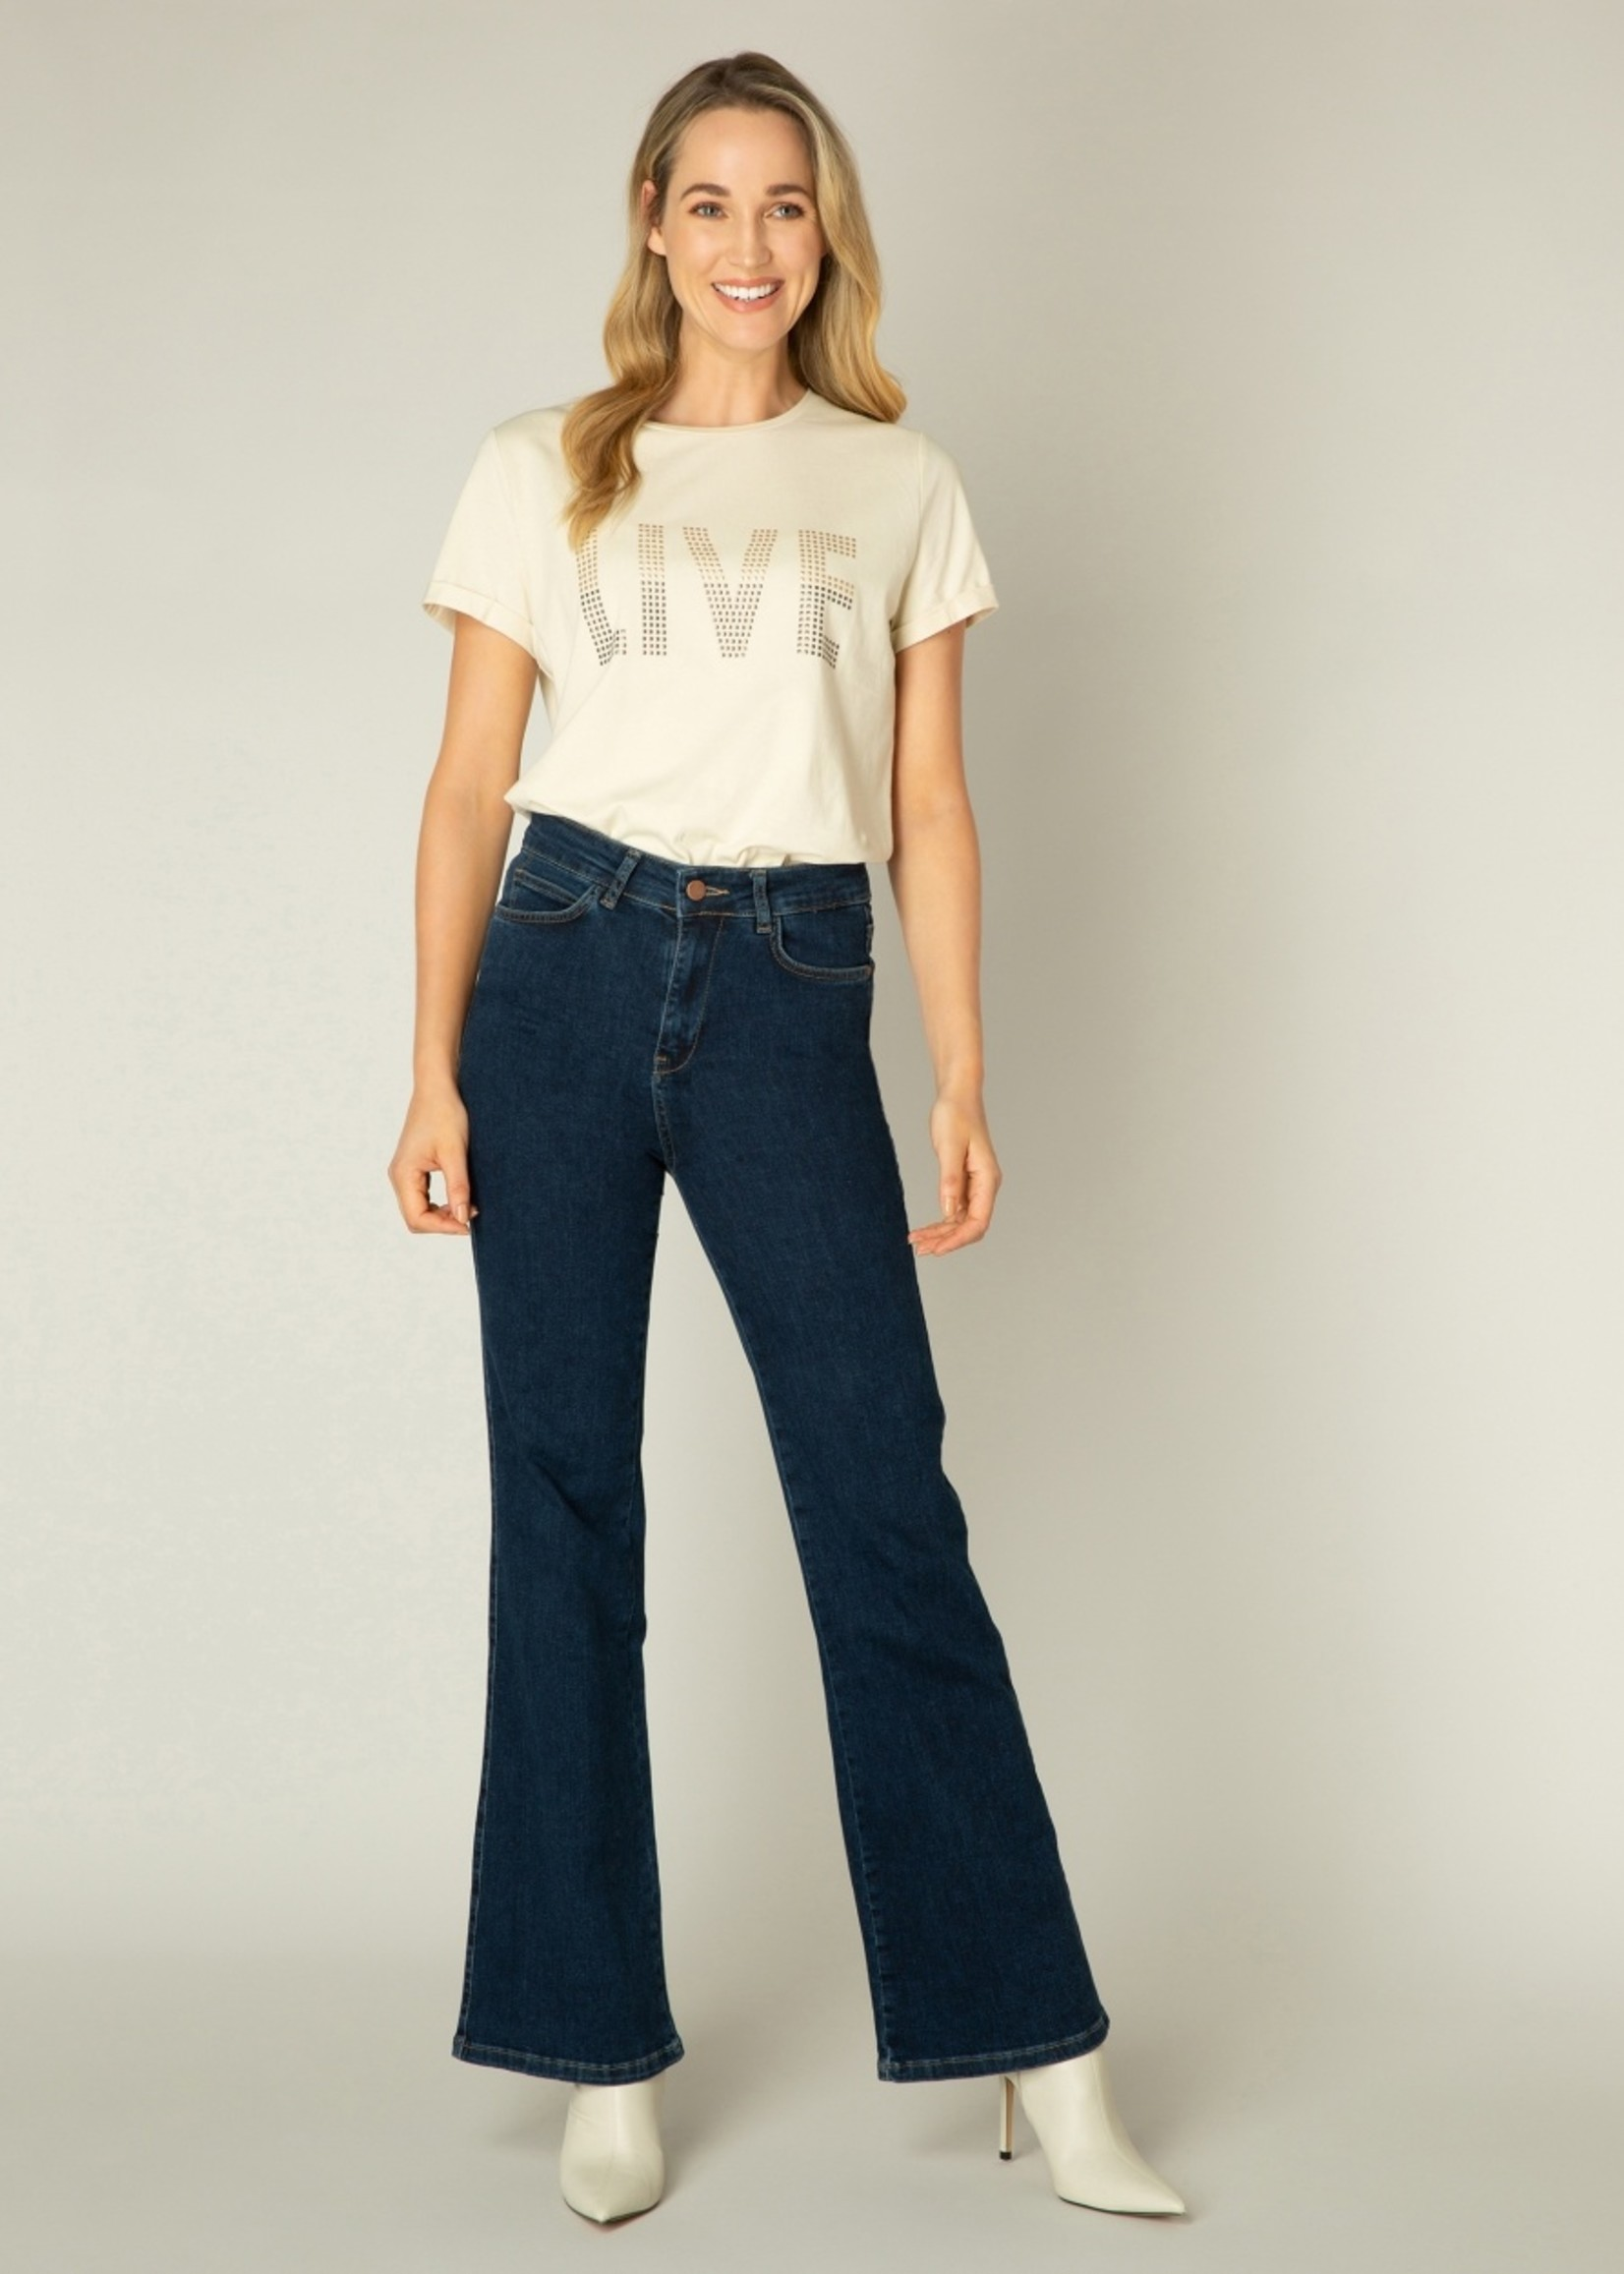 Ivy Beau Ivy Beau Quinin Flared Jeans